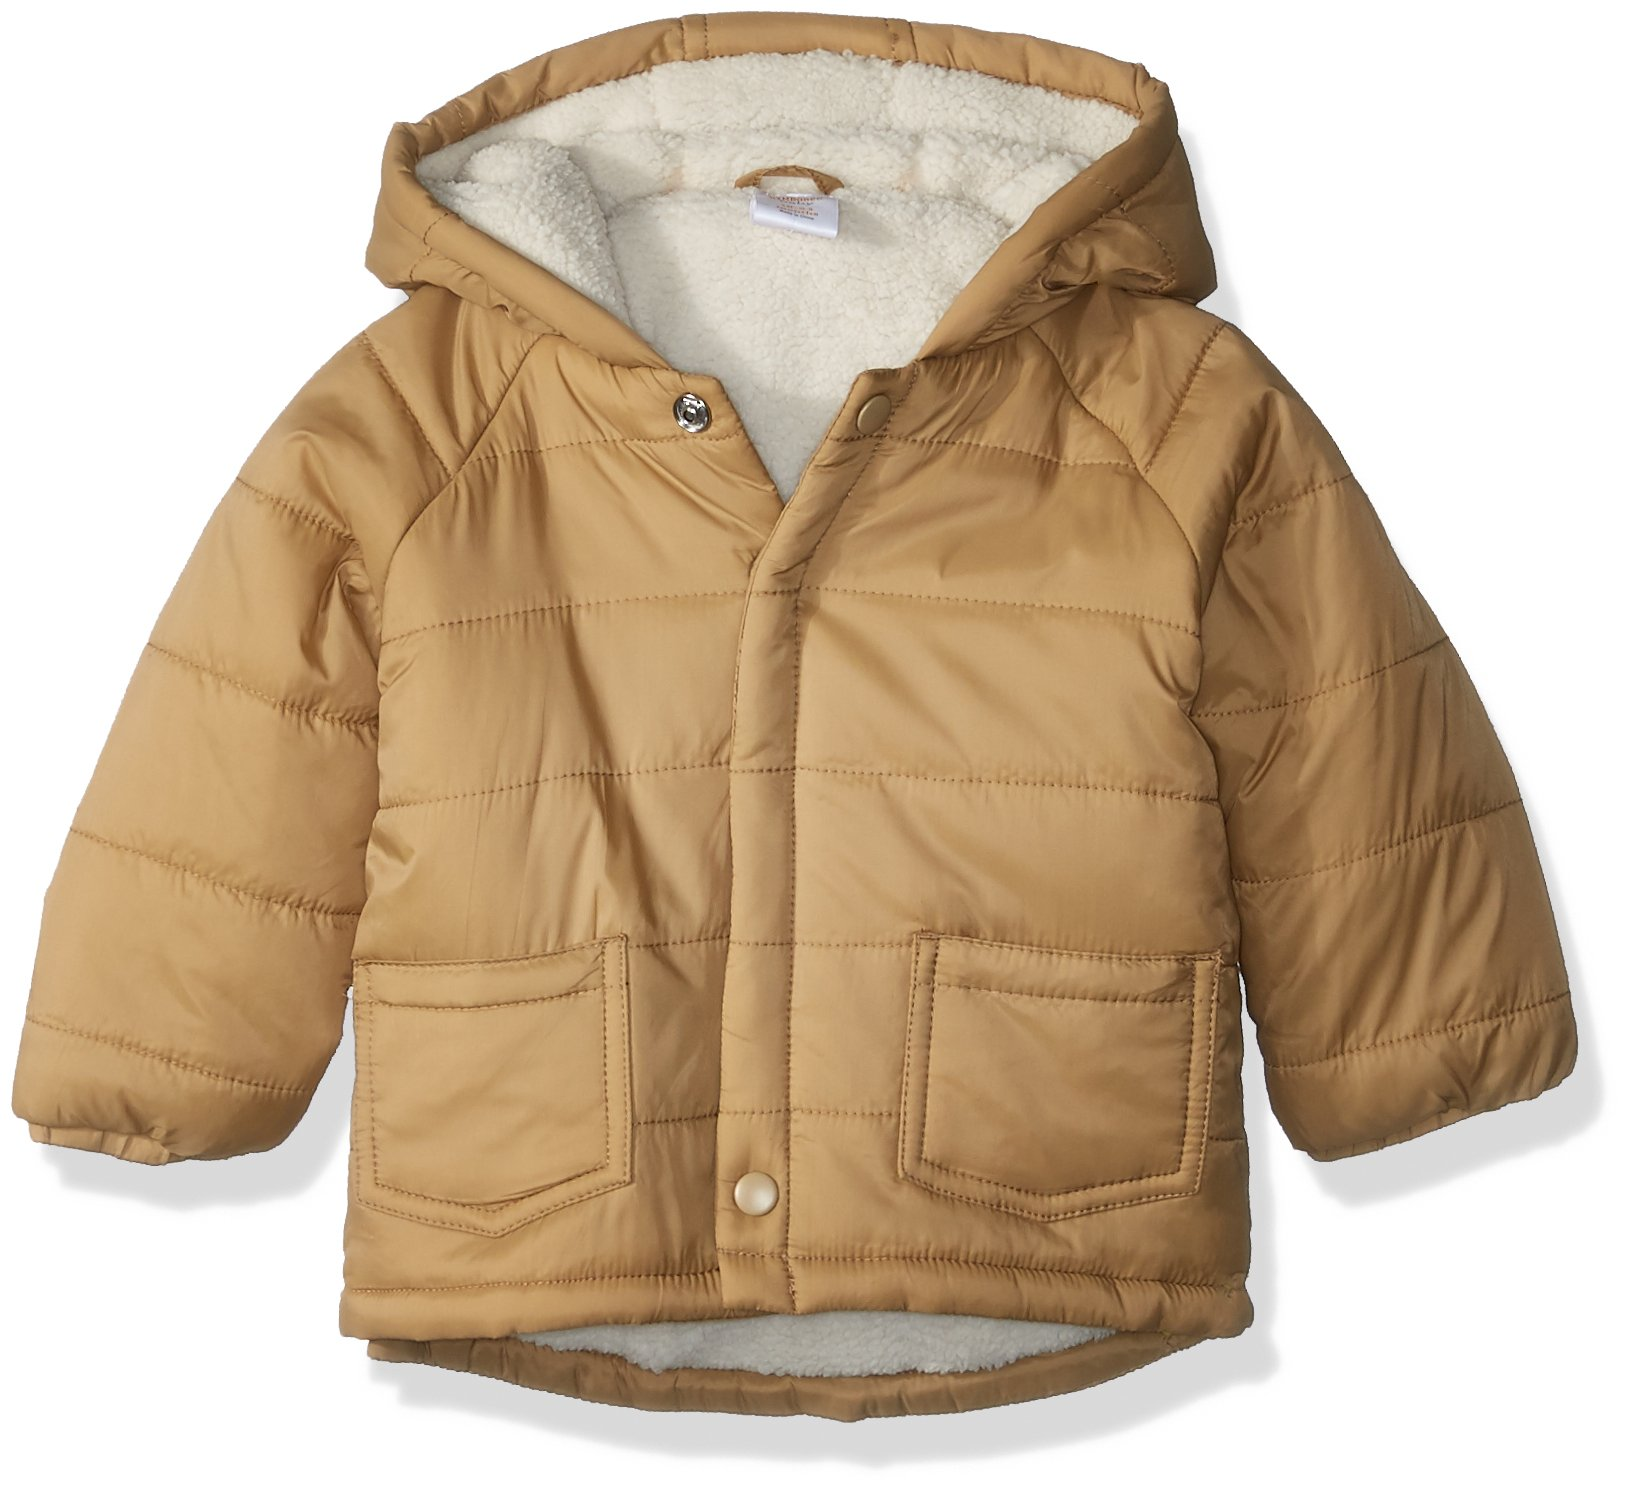 Gymboree Toddler Boys' Quilted Sherpa-Lined Coat, Tan, 18-24 Mo